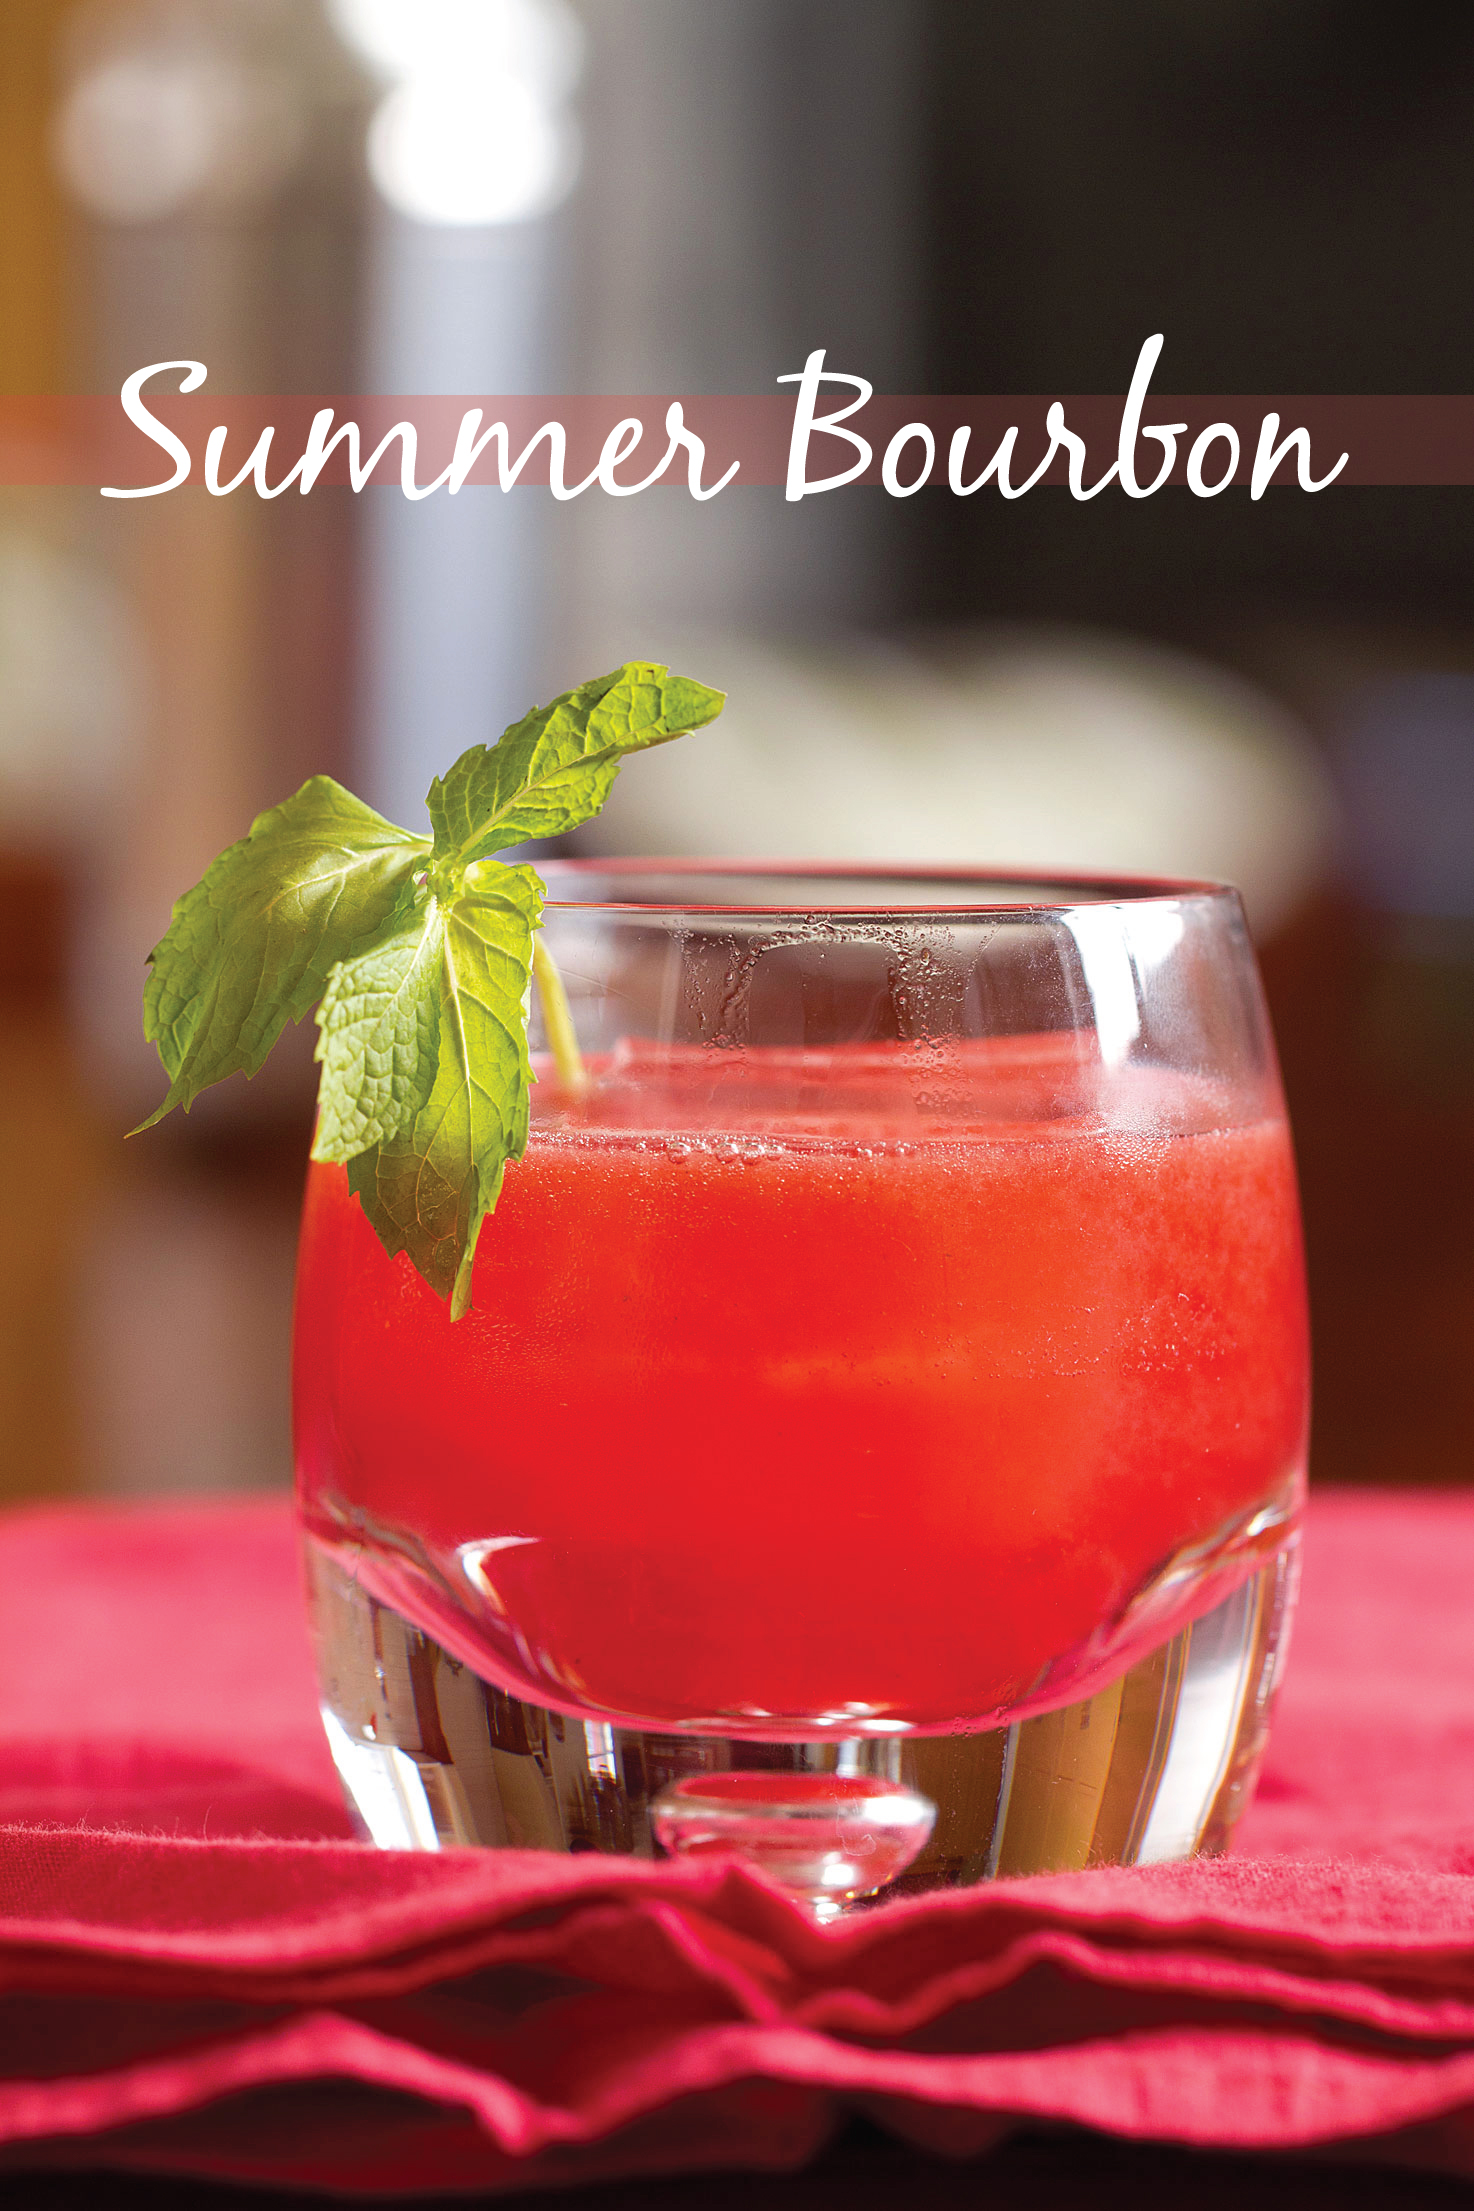 Summer Bourbon Cocktail